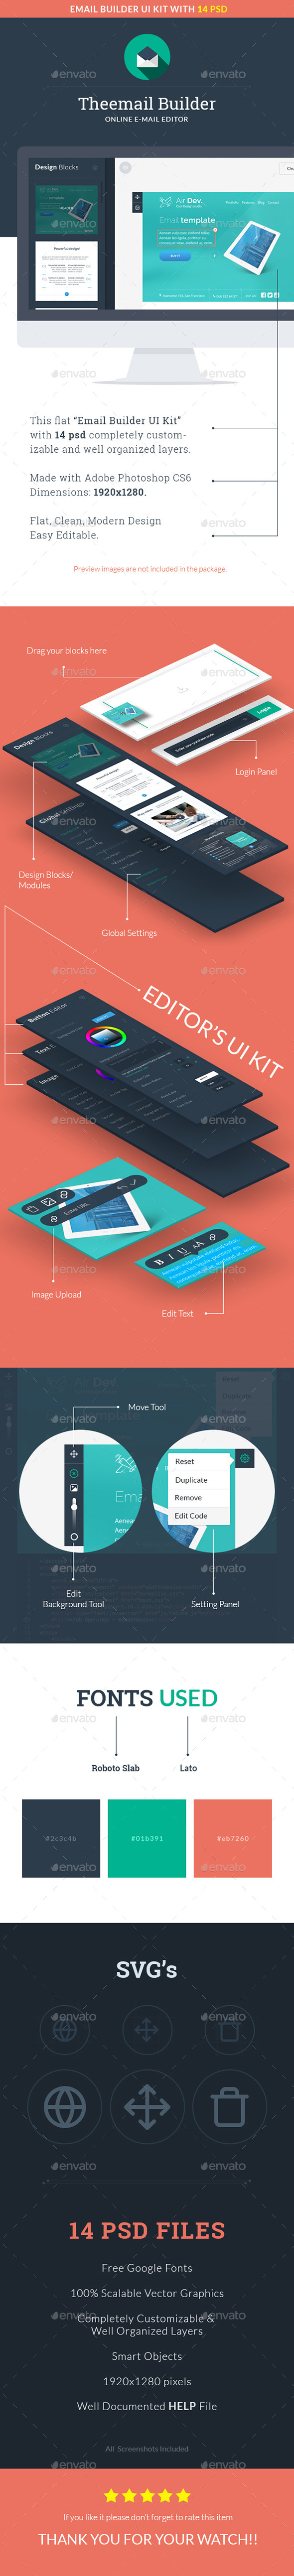 GraphicRiver Theemail Builder 9997980